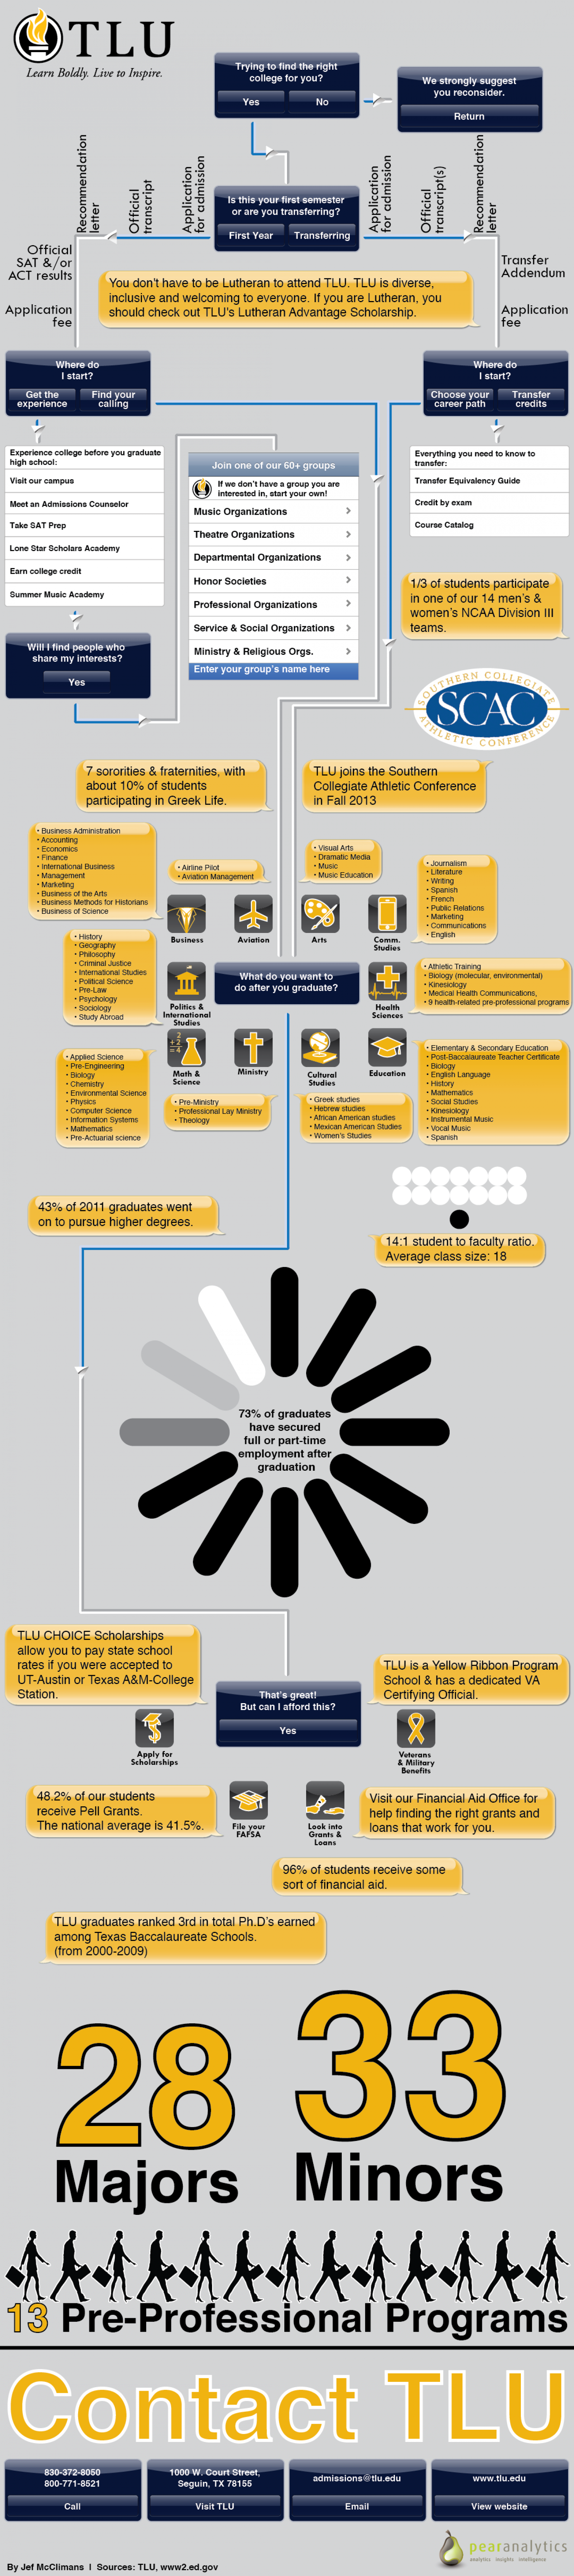 Finding the Right College for You Infographic